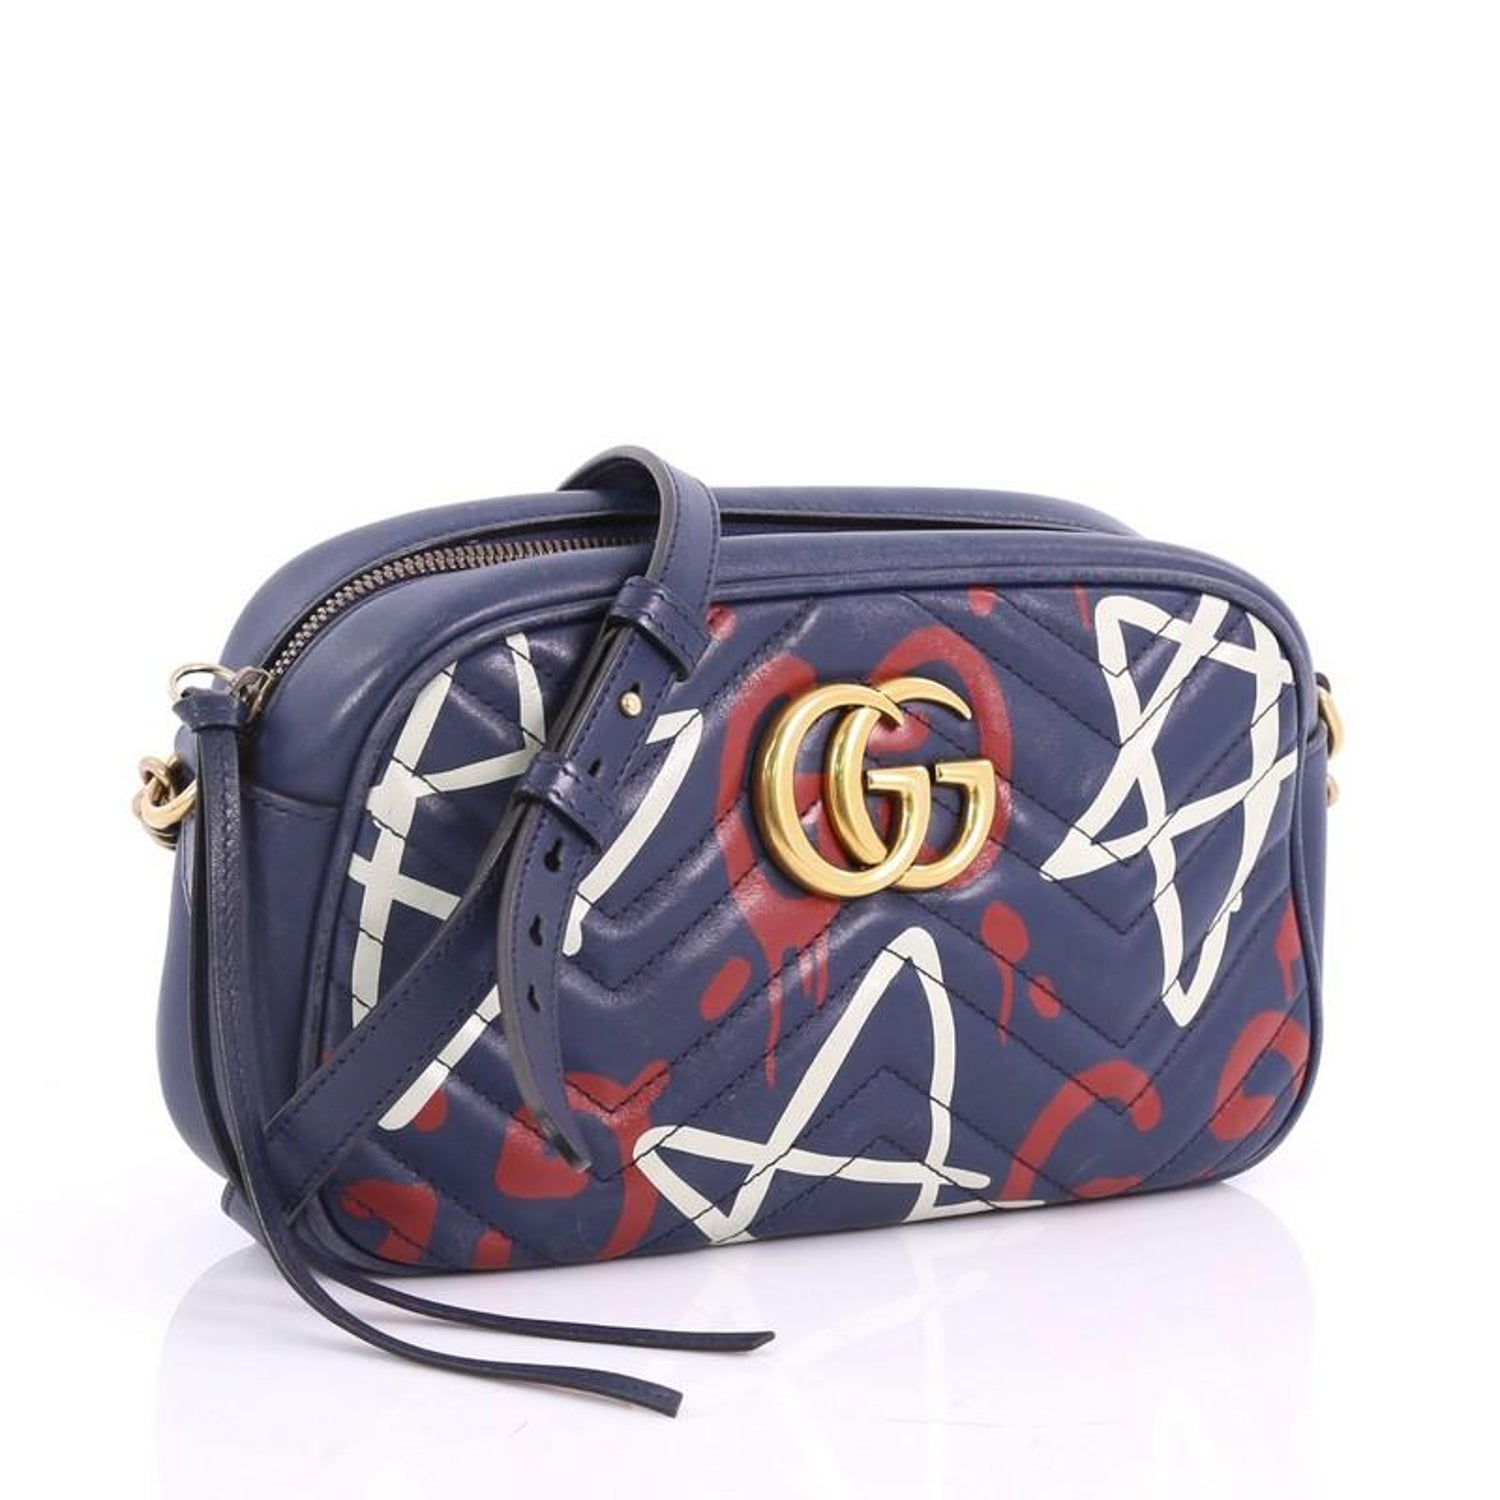 0b7dfde4fd8 Gucci GG Marmont Shoulder Bag GucciGhost Matelasse Leather Small at 1stdibs